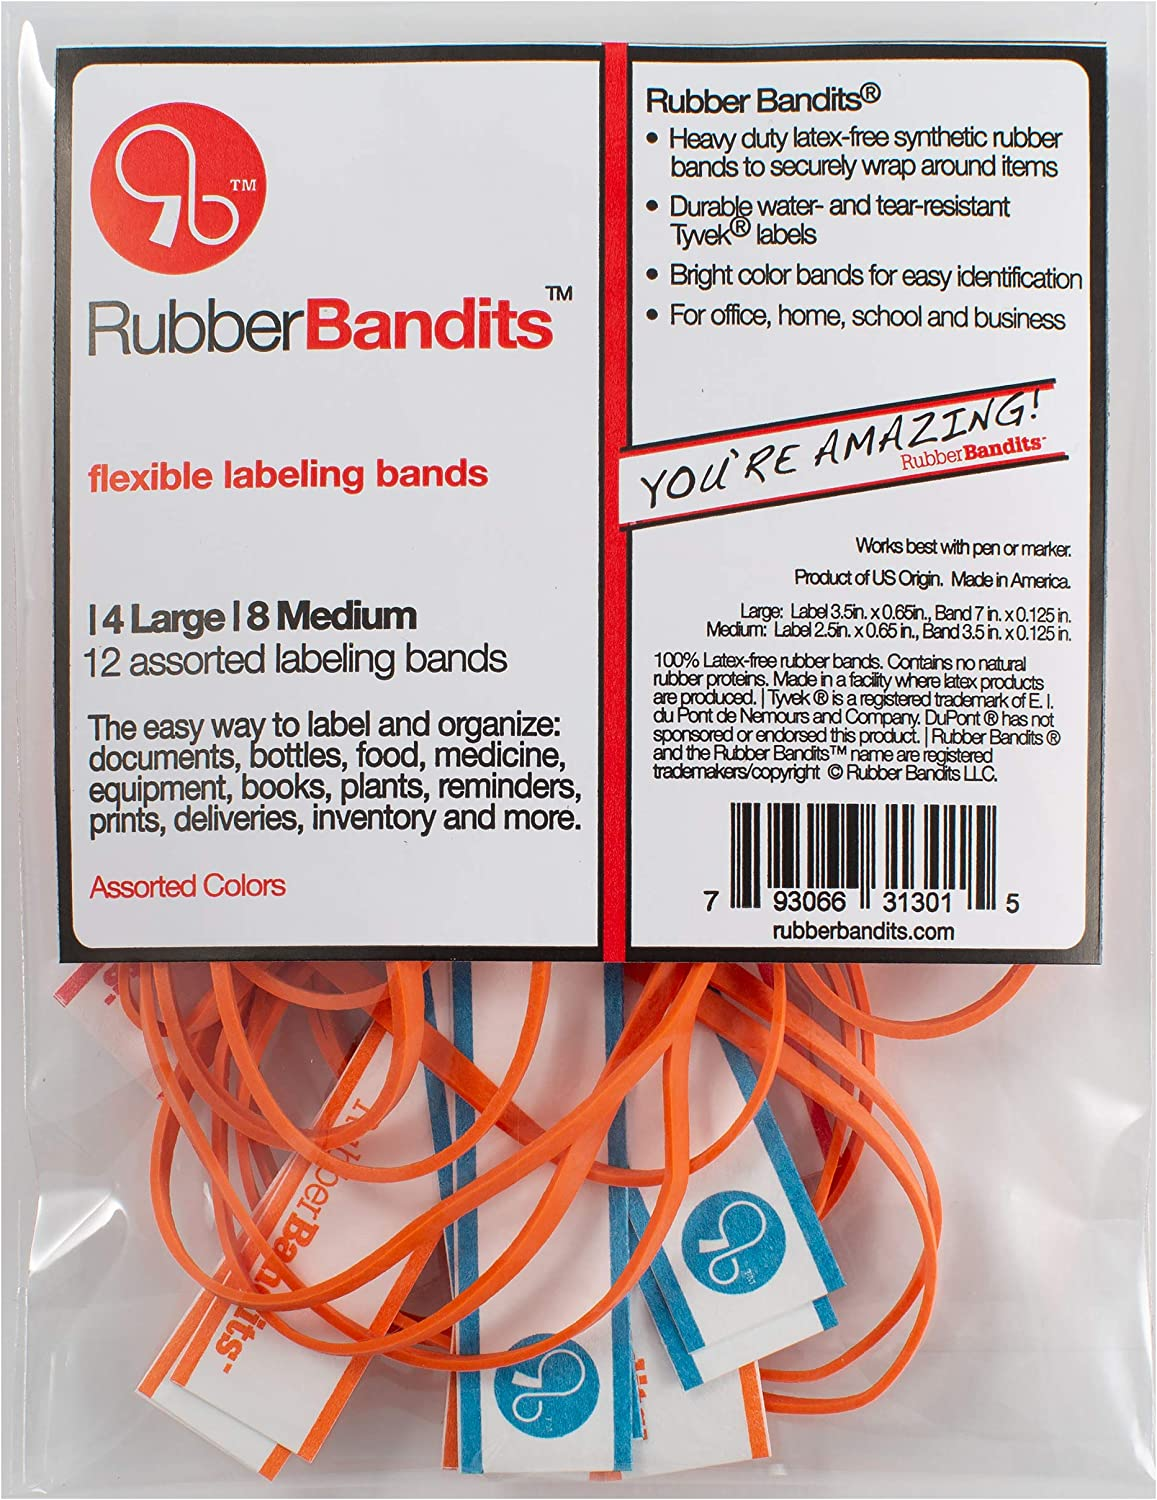 RUBBER BANDITS - Flexible Labeling Bands for Office, Home, School | Made with Write-On Tear Resistant TYVEK Tags and Bright Color Non-Latex Rubber Bands | 1-Pack